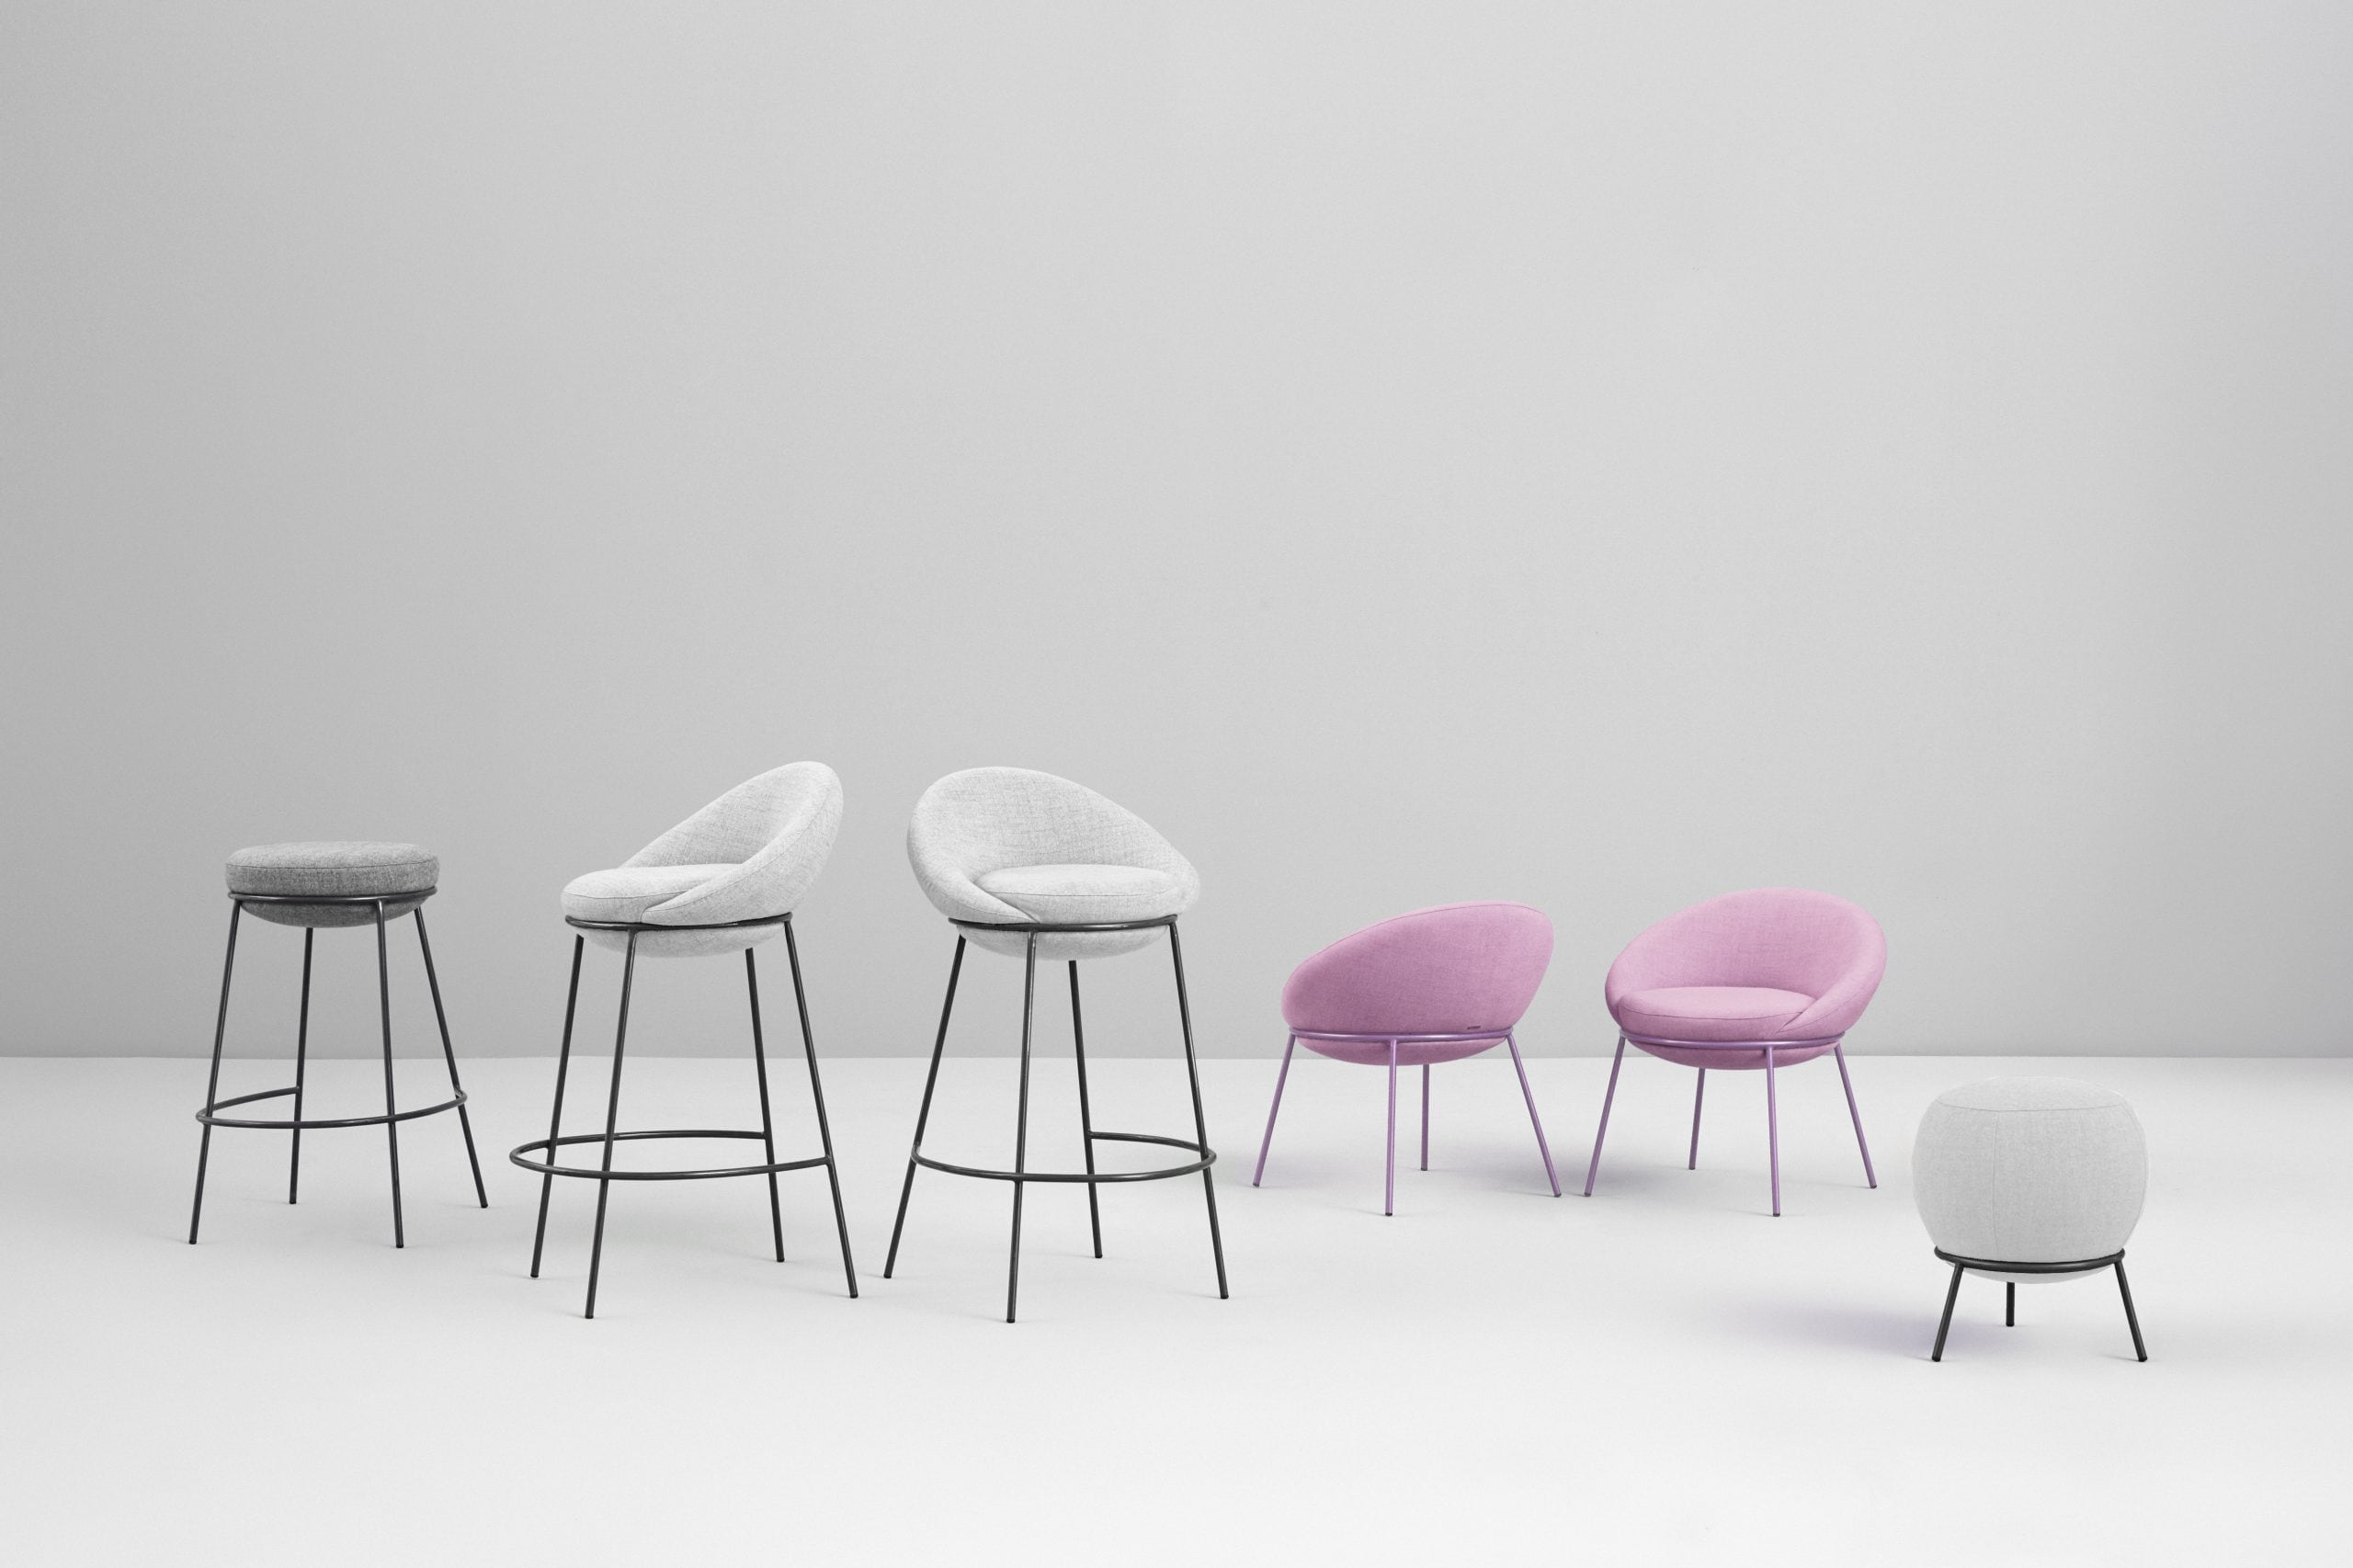 nest-chair-low-hospitality-interior-projects-furniture-contract